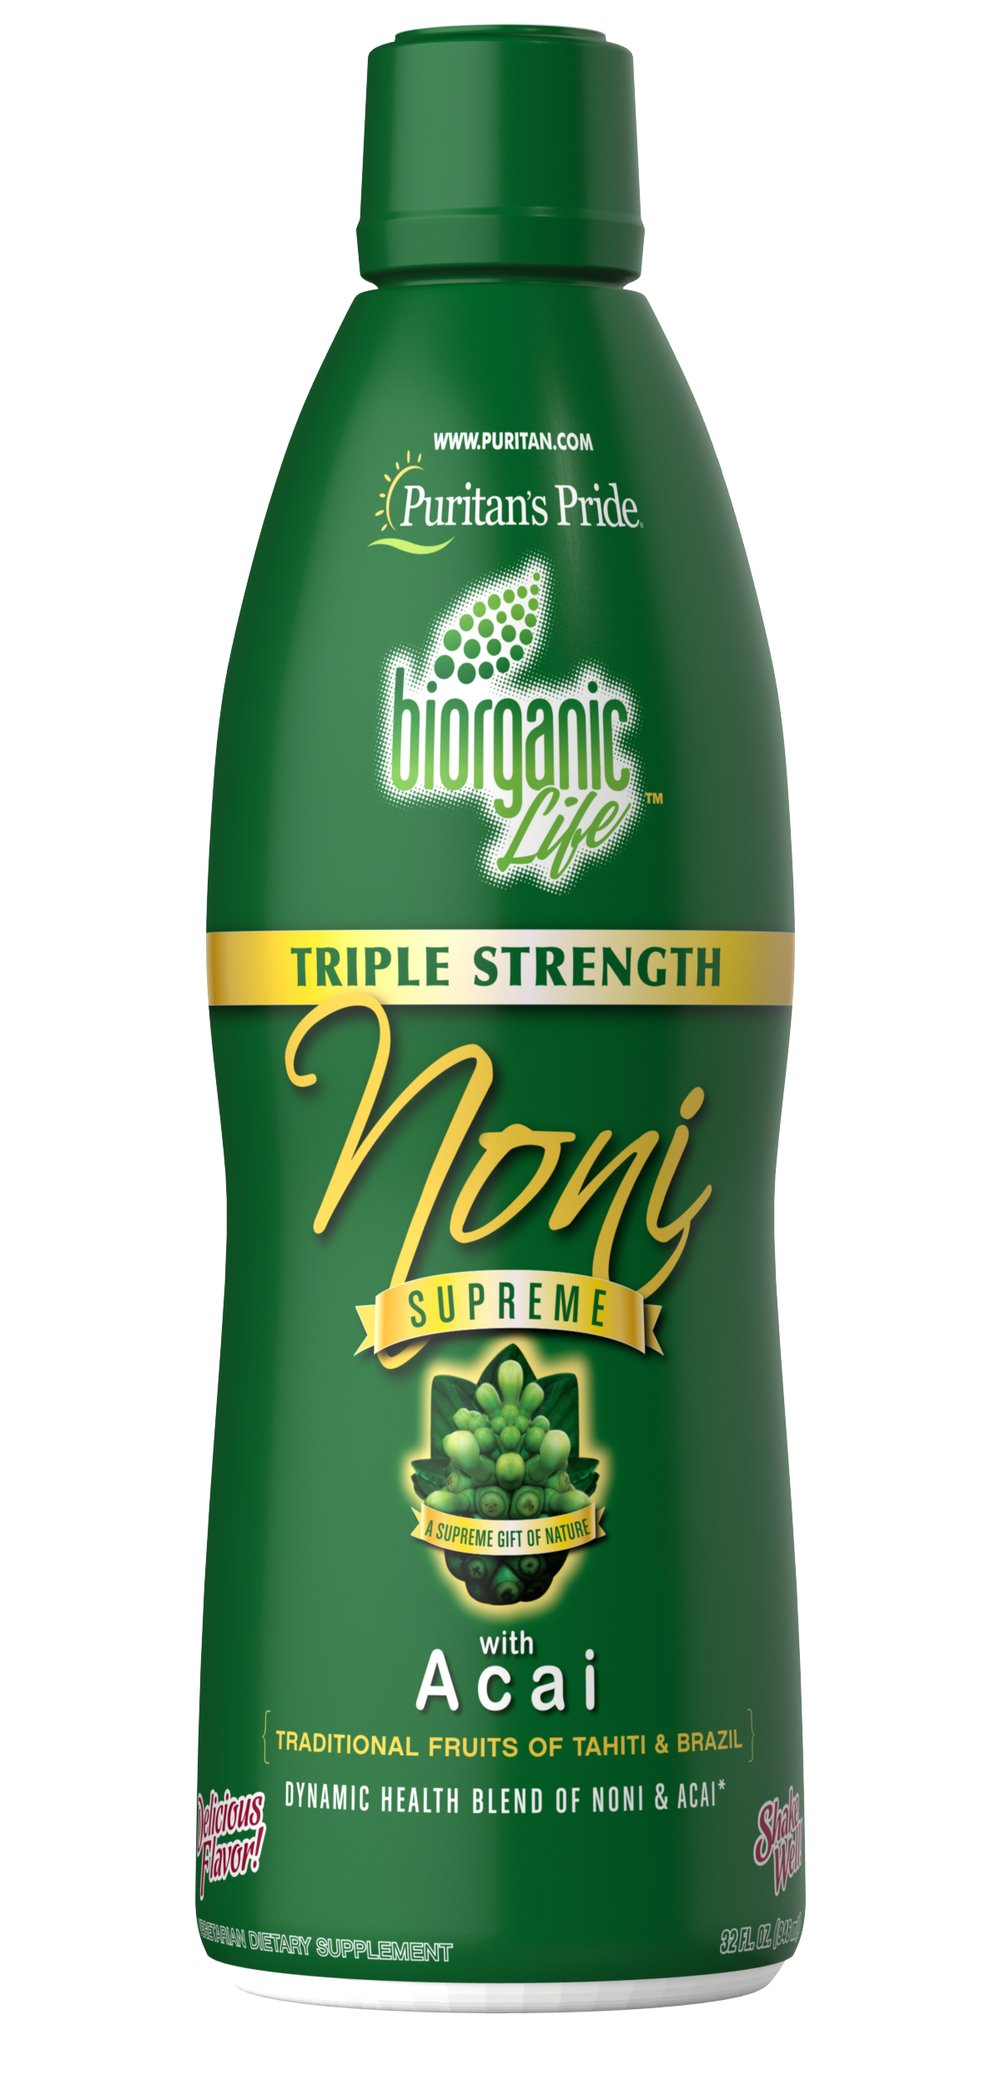 Triple Strength Noni Supreme Juice with Acai Thumbnail Alternate Bottle View